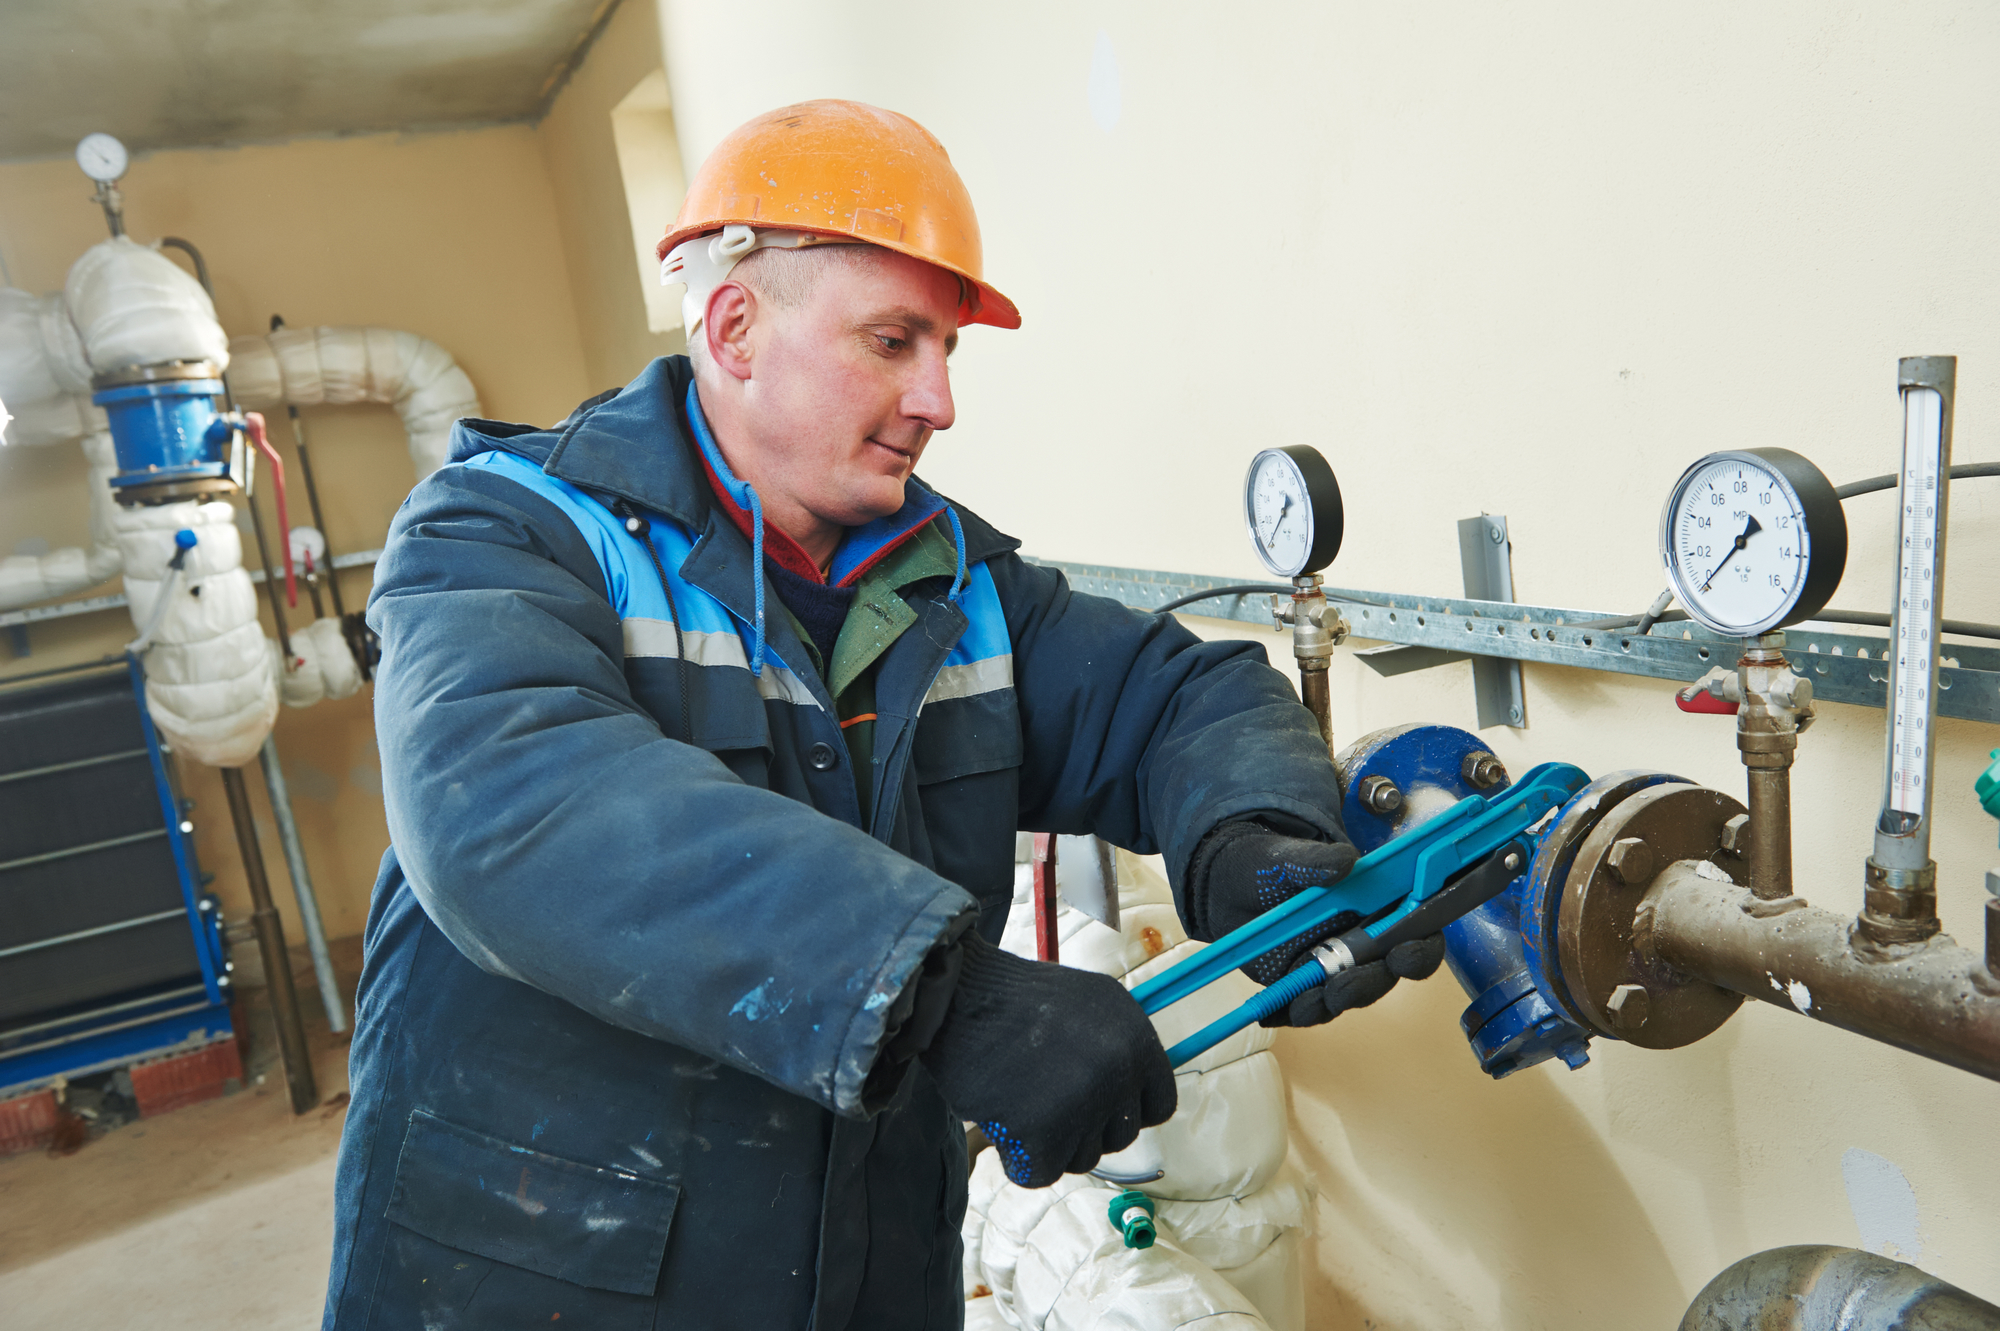 5 Things to Do Before You Get a Rental Boiler - Smith Hughes Company ...